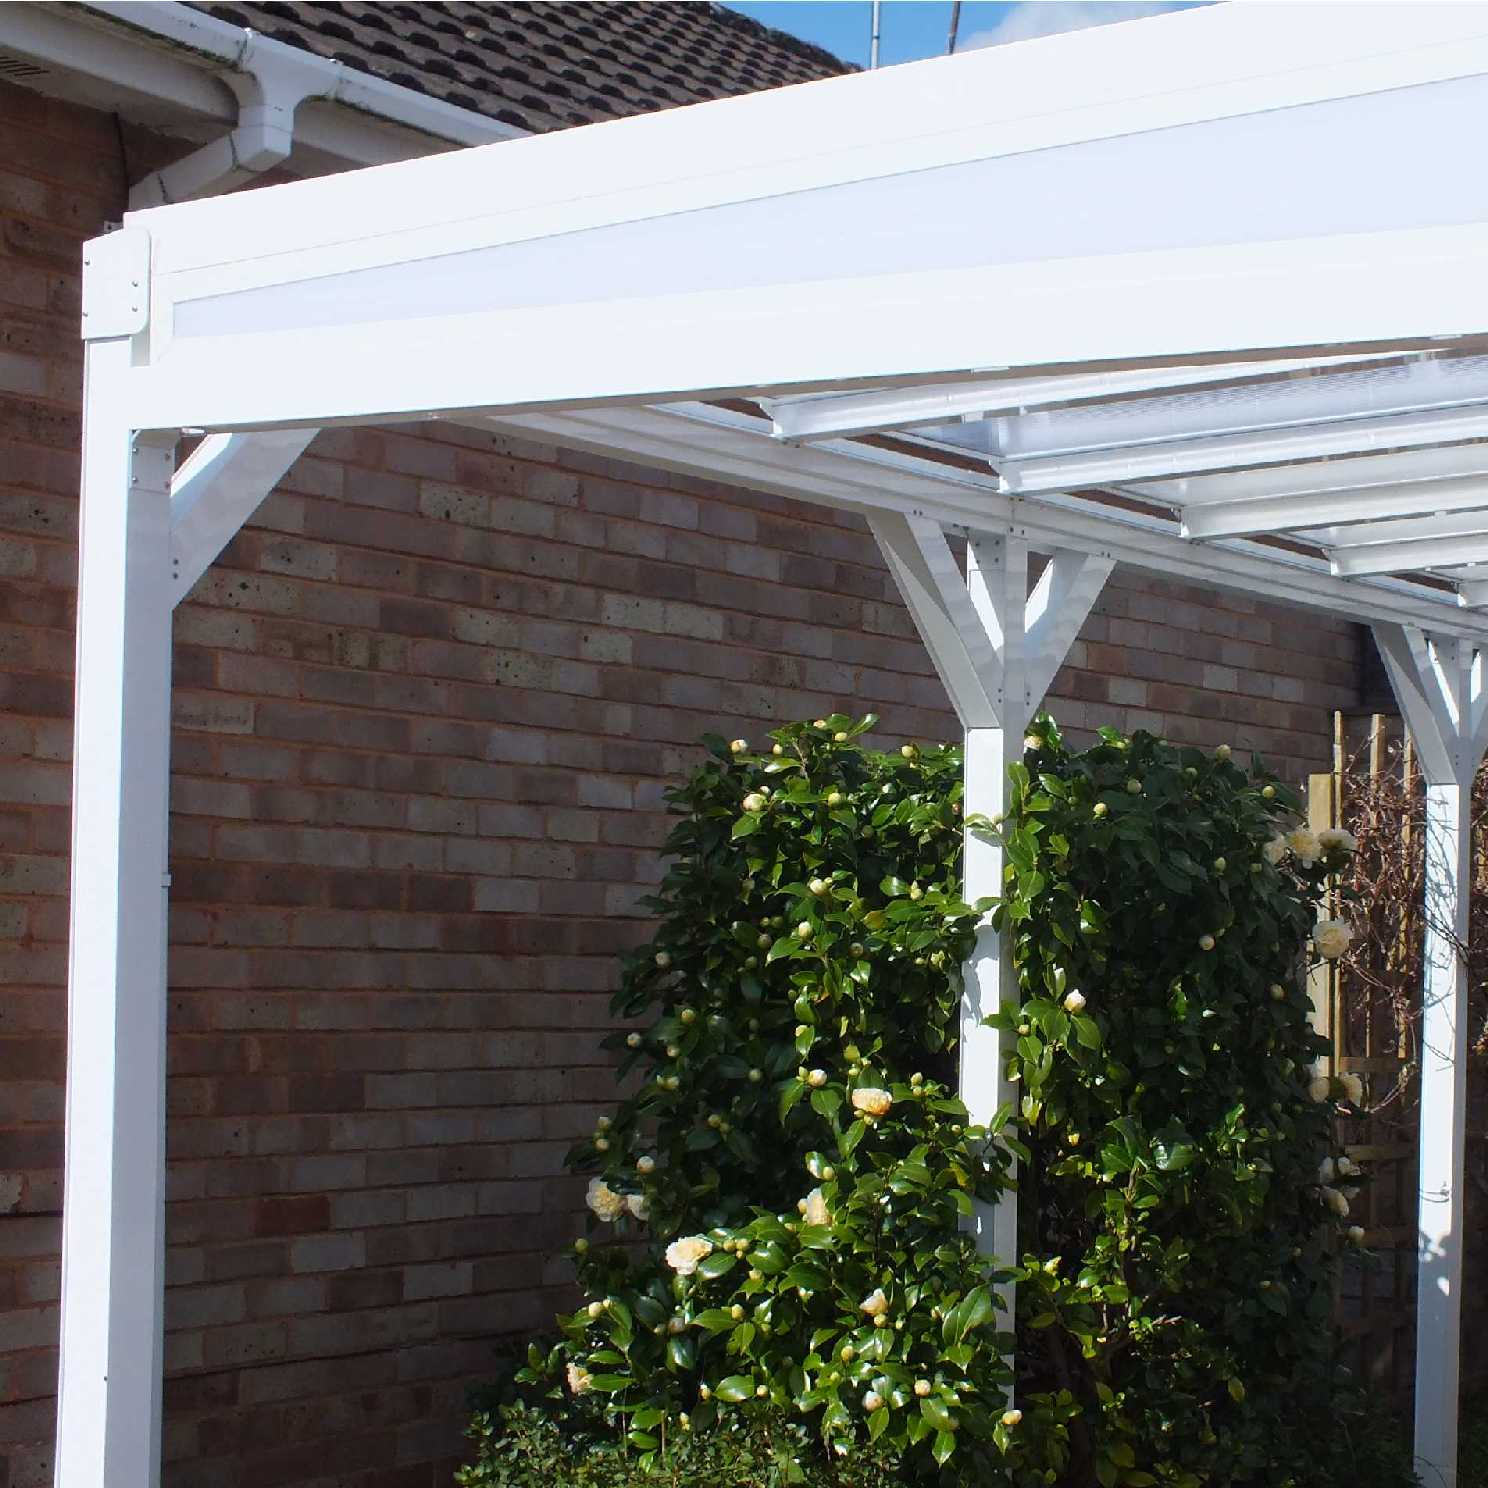 Omega Smart White Lean-To Canopy with 16mm Polycarbonate Glazing - 7.4m (W) x 3.0m (P), (4) Supporting Posts from Omega Build